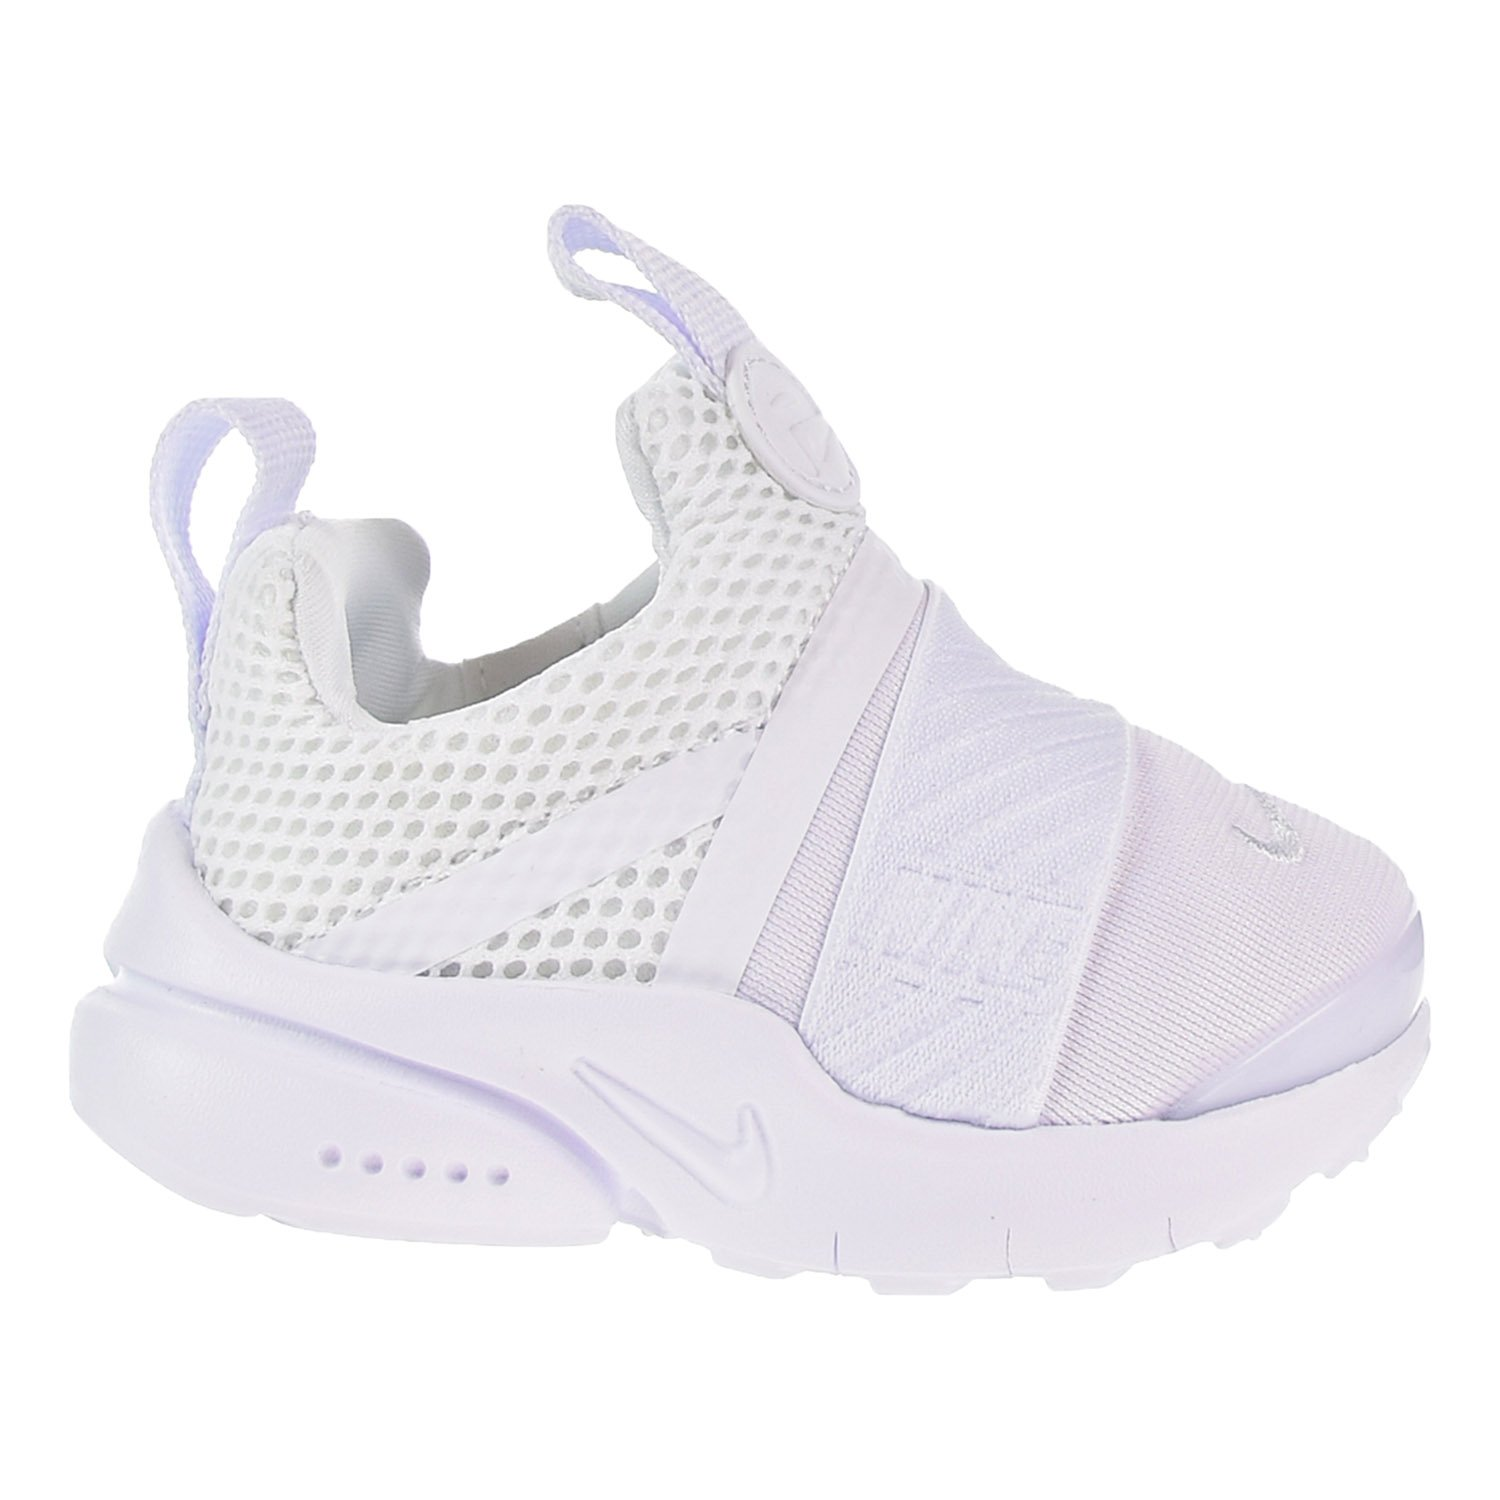 Galleon - NIKE Presto Extreme Toddler s Running Shoes White White  870019-101 (6 M US) cb8776832